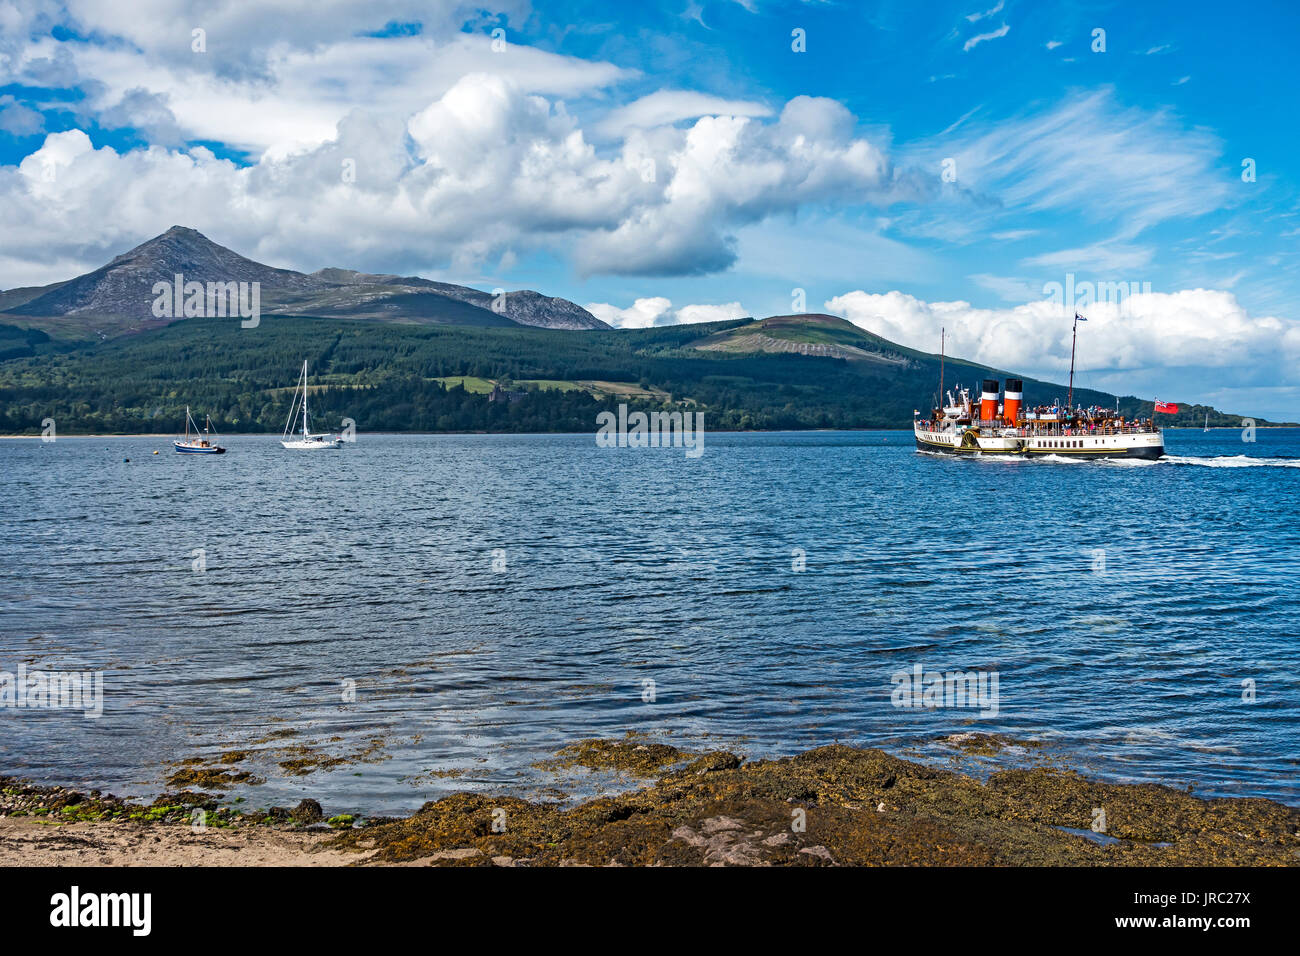 Ocean going paddle steamer Waverley departing Brodick Arran Argyll & Bute Scotland UK with Goat Fell mountain left. - Stock Image